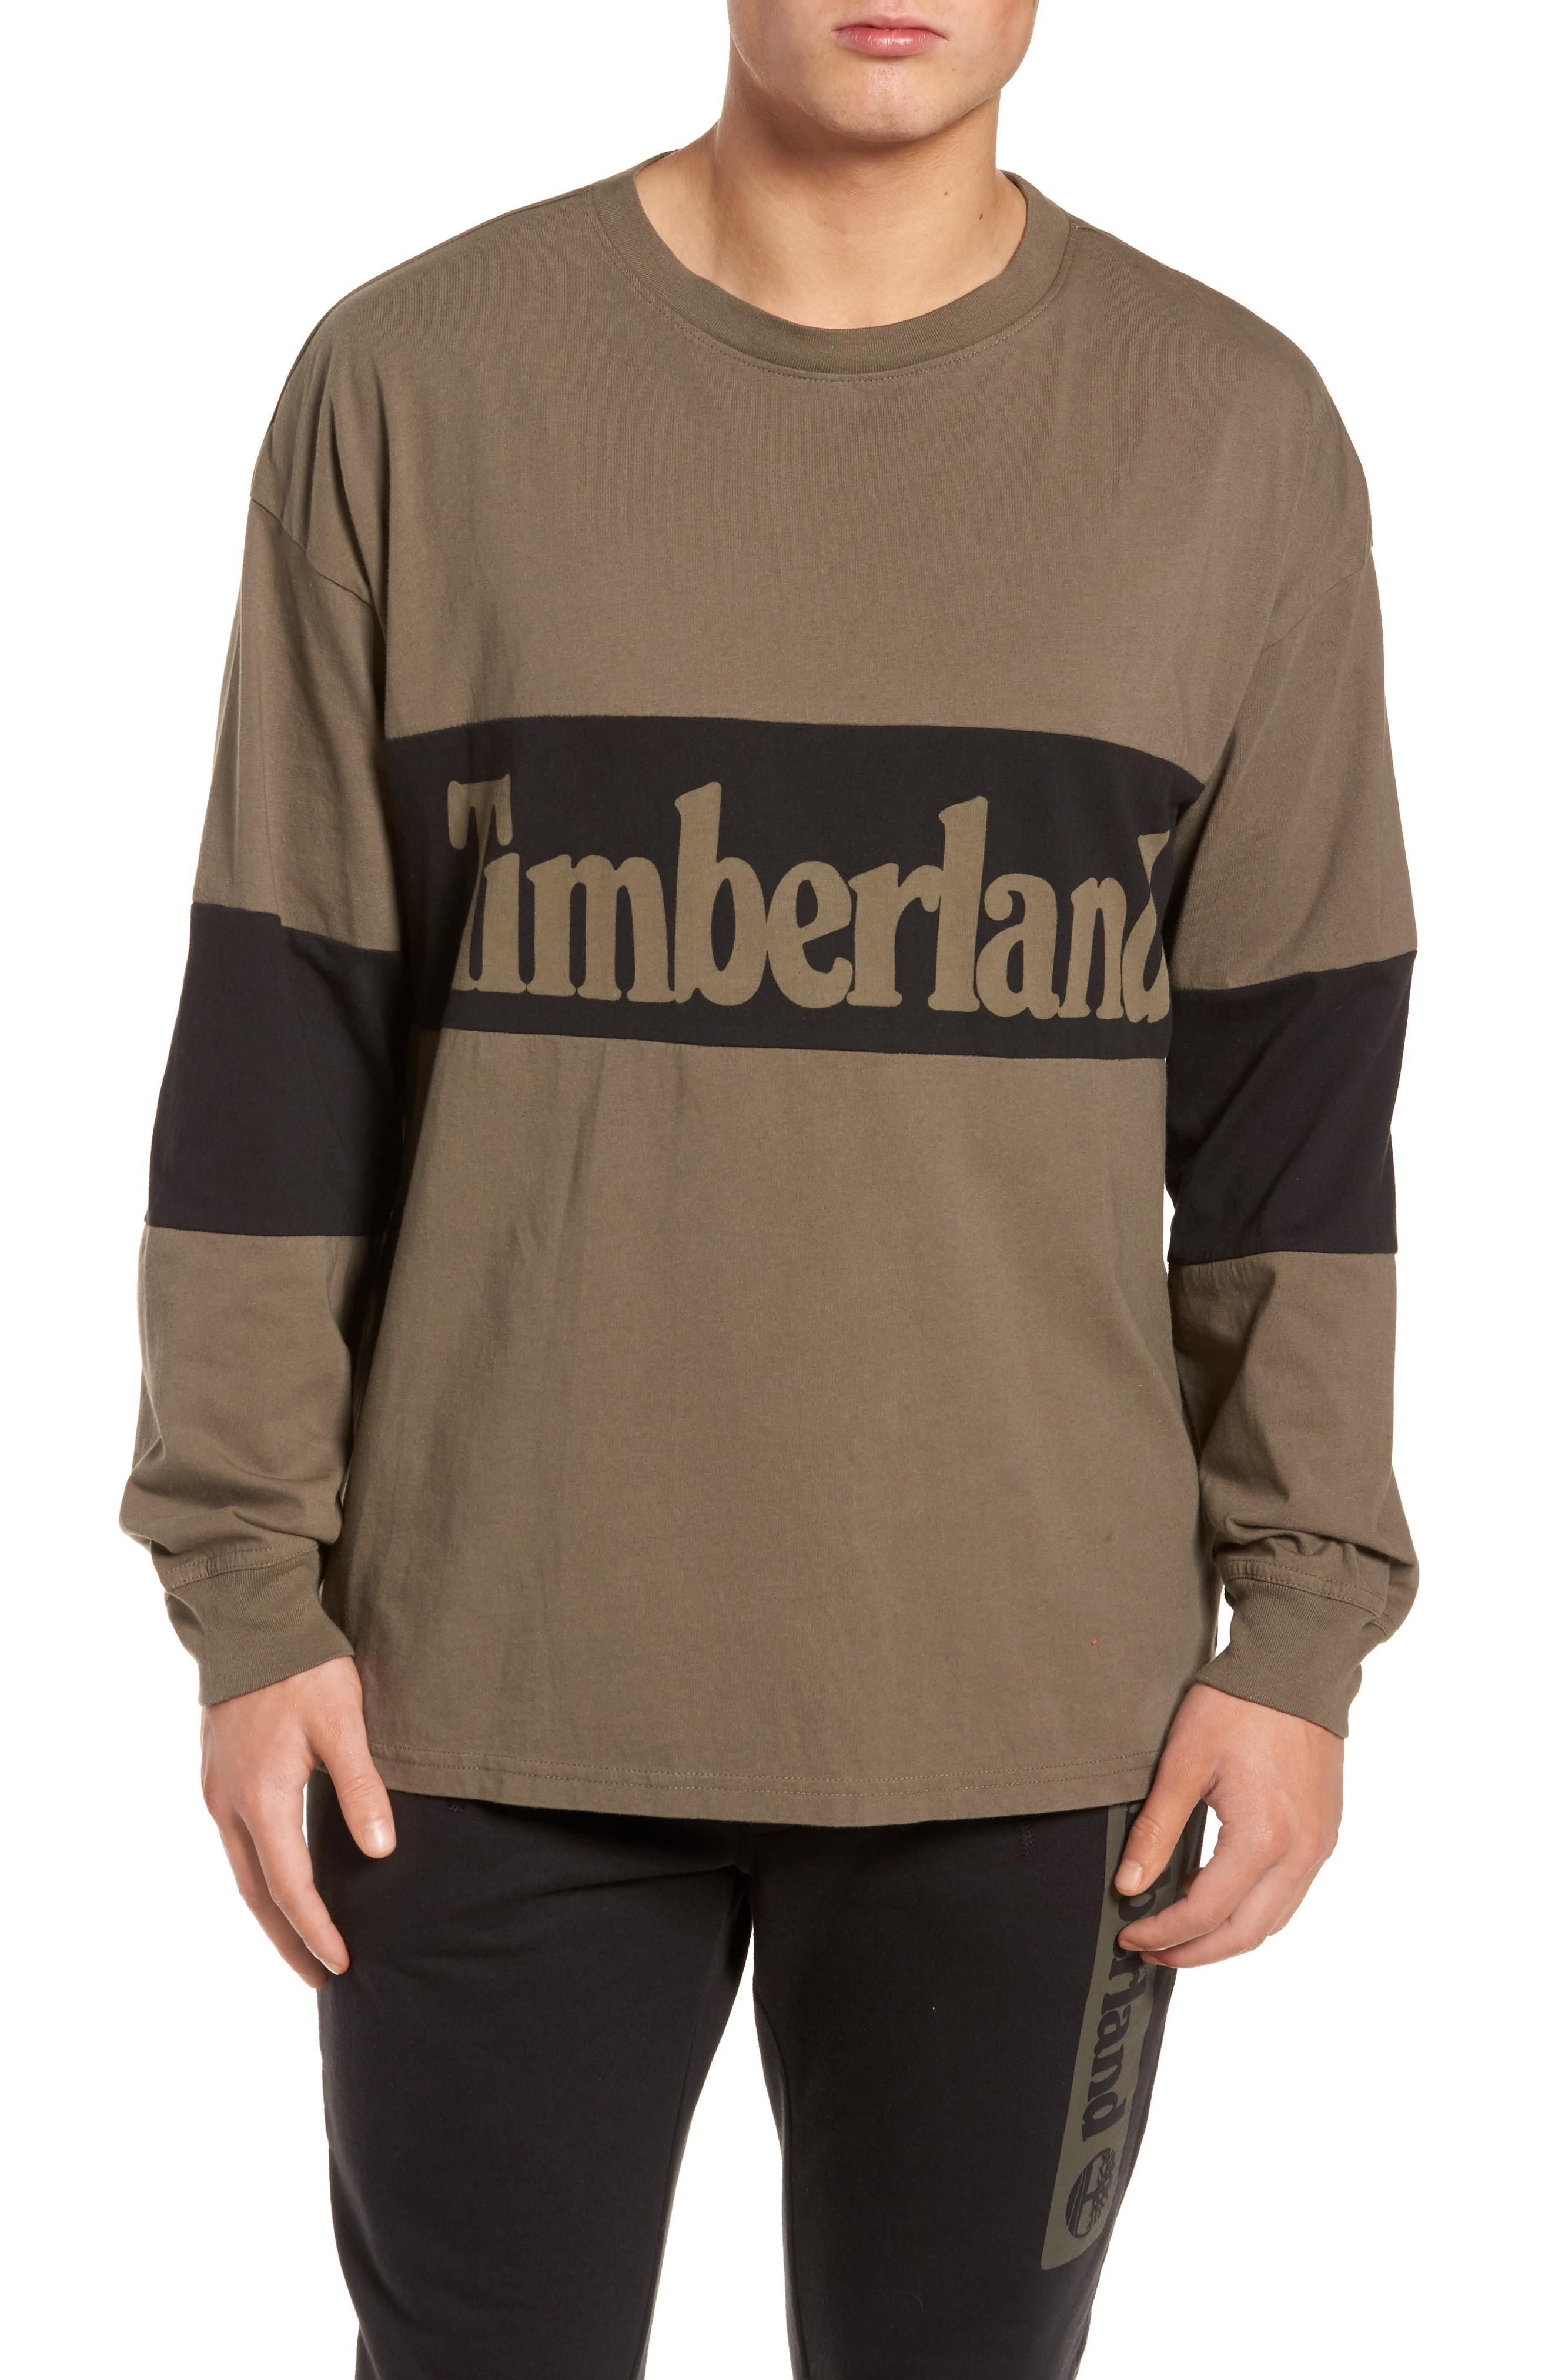 Timberland Logo Graphic T-shirt In Bungee Cord